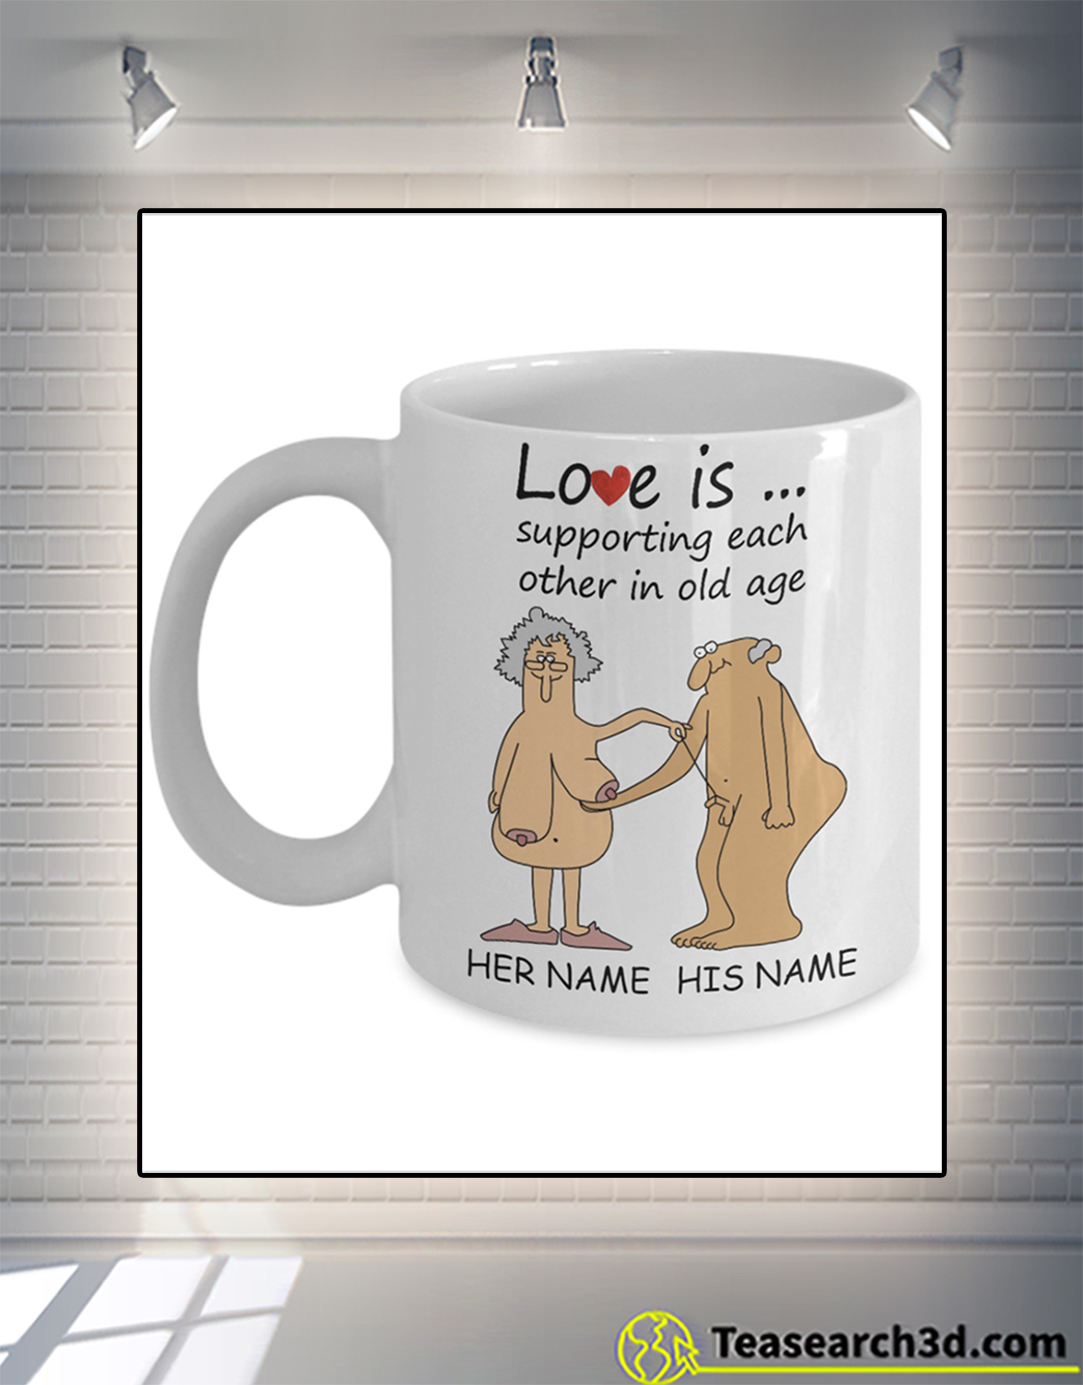 Personalized custom name love is supporting each other in old age mug 15oz